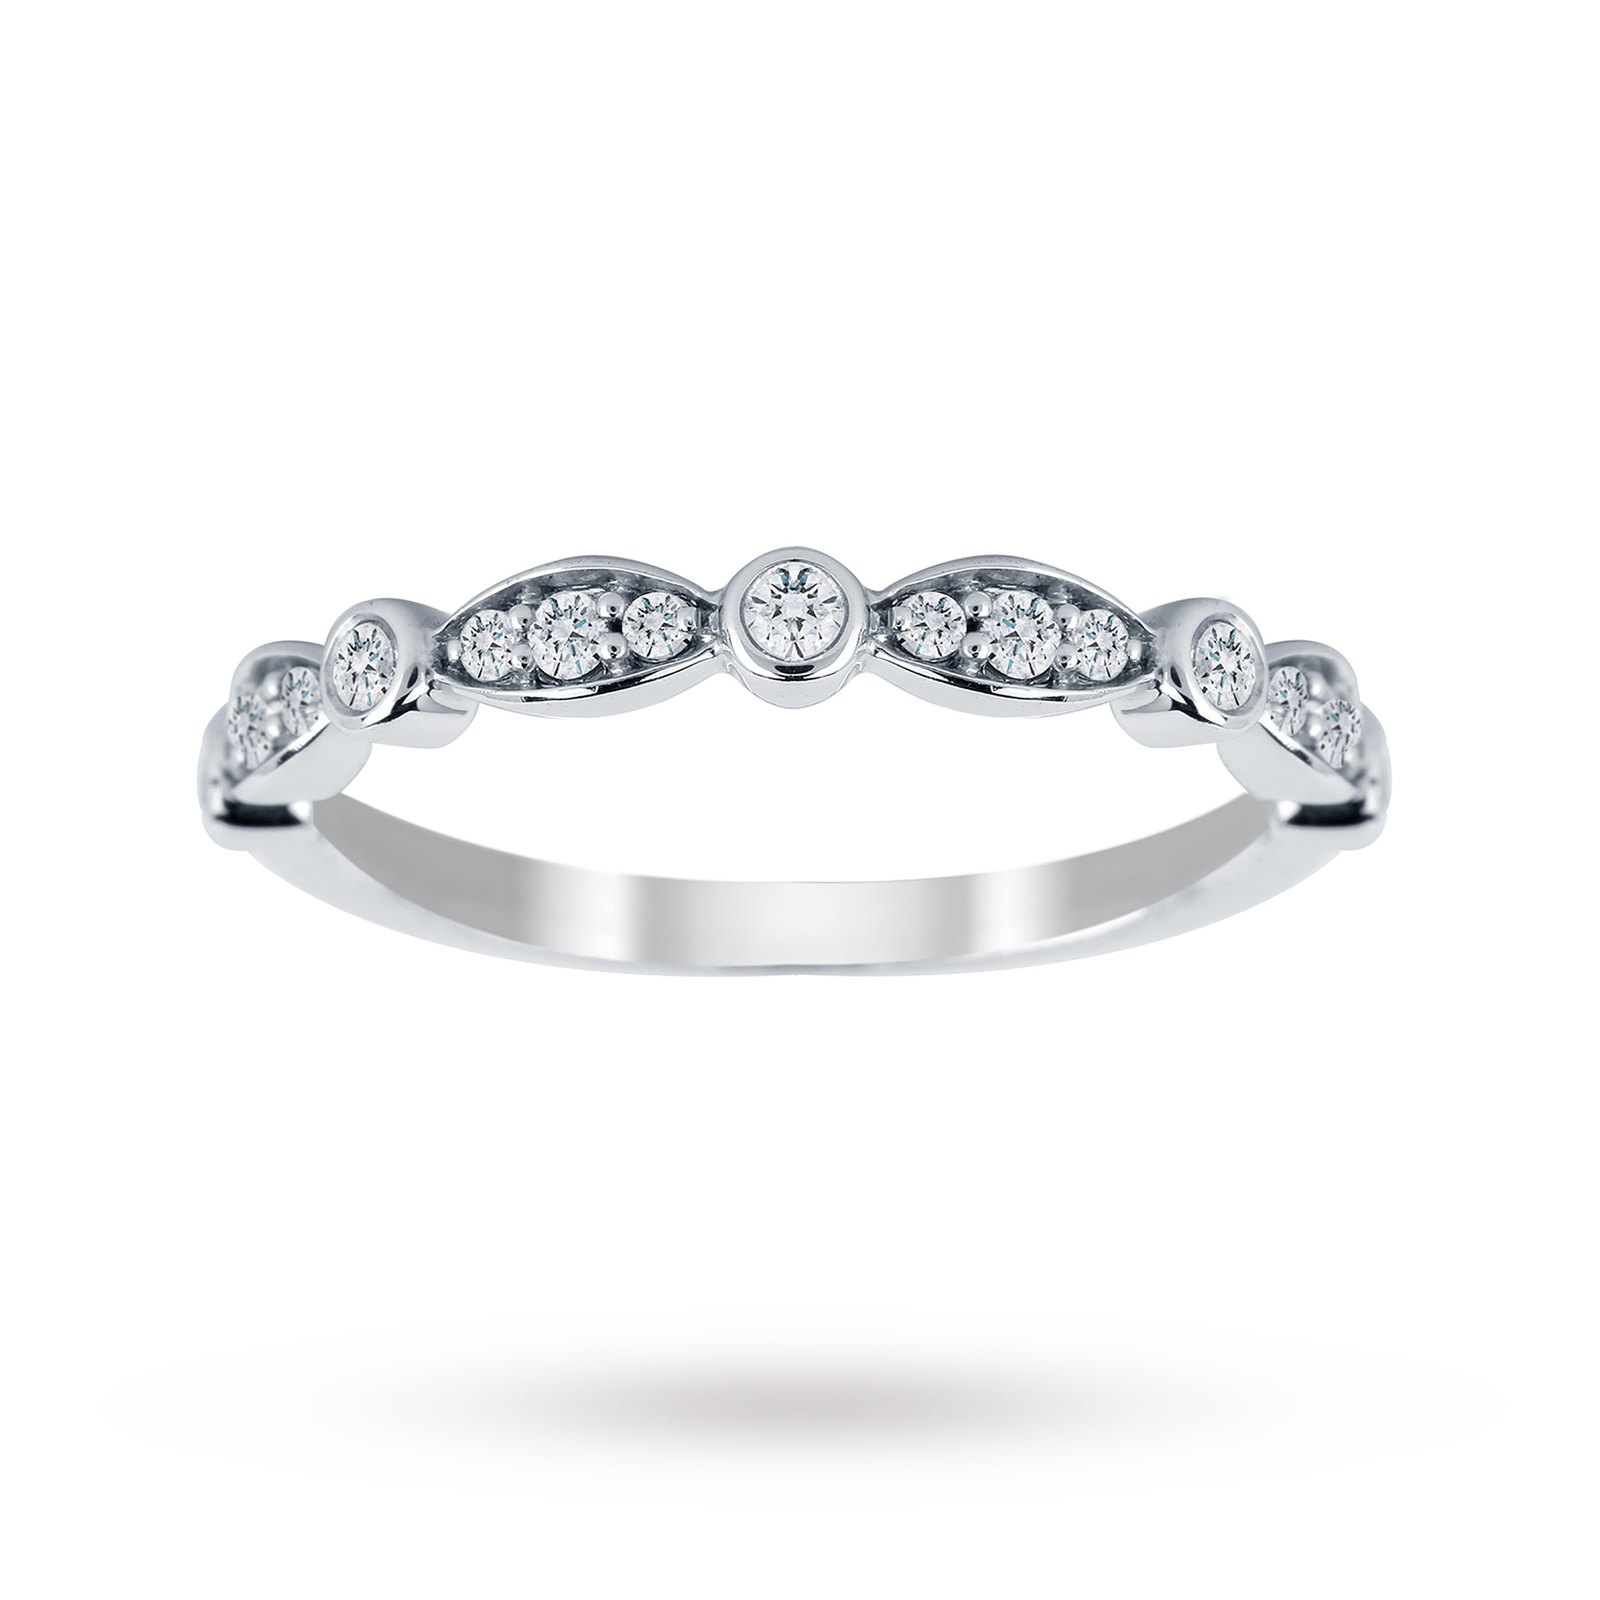 Jenny Packham 18ct White Gold 0.20cttw Band Ring - Ring Size J